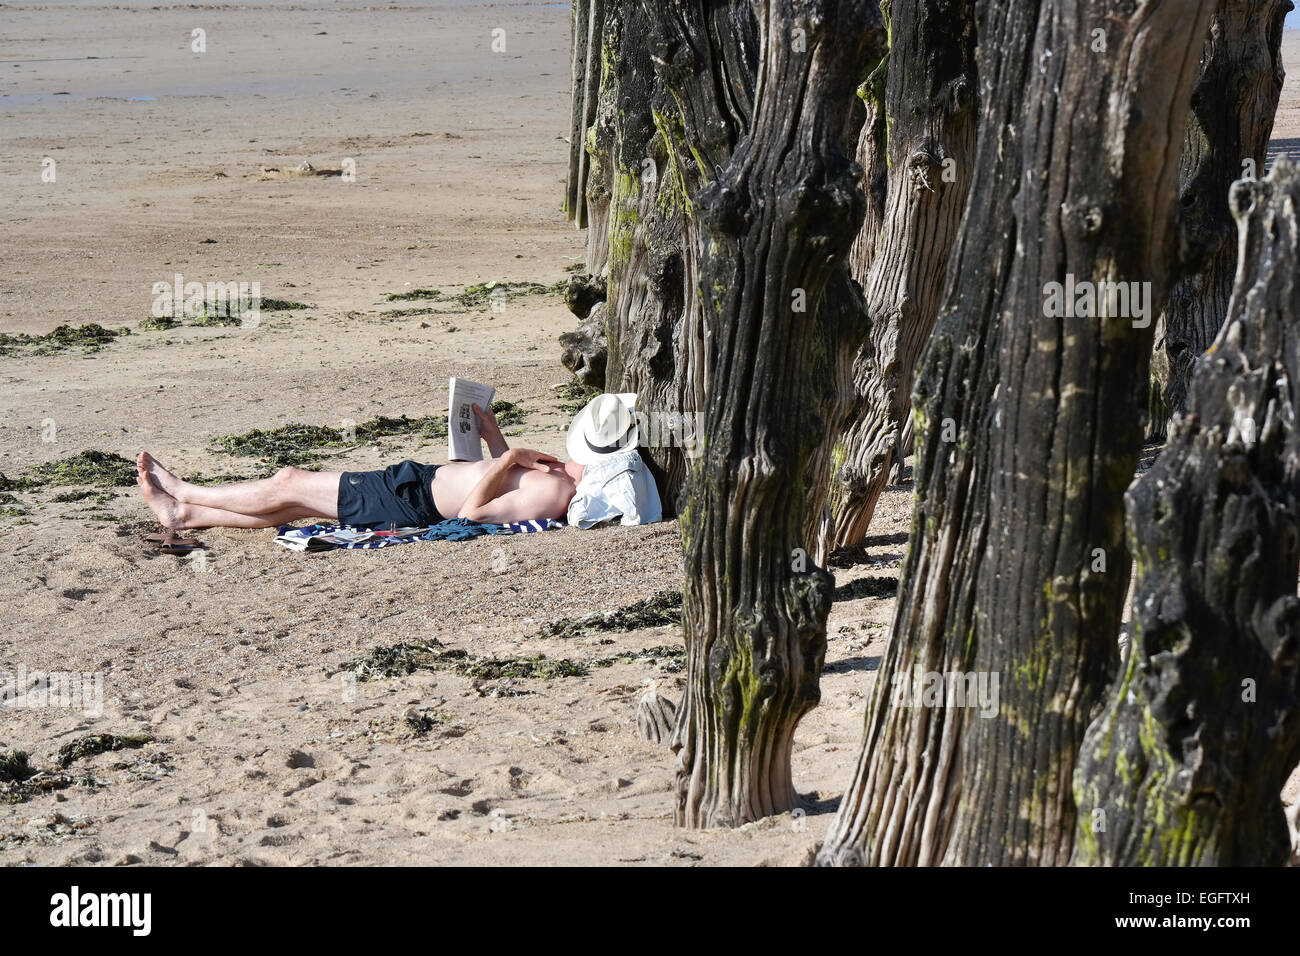 Man with straw hat relaxing and reading a magazine on the beach in Saint-Malo, Brittany, France - Stock Image